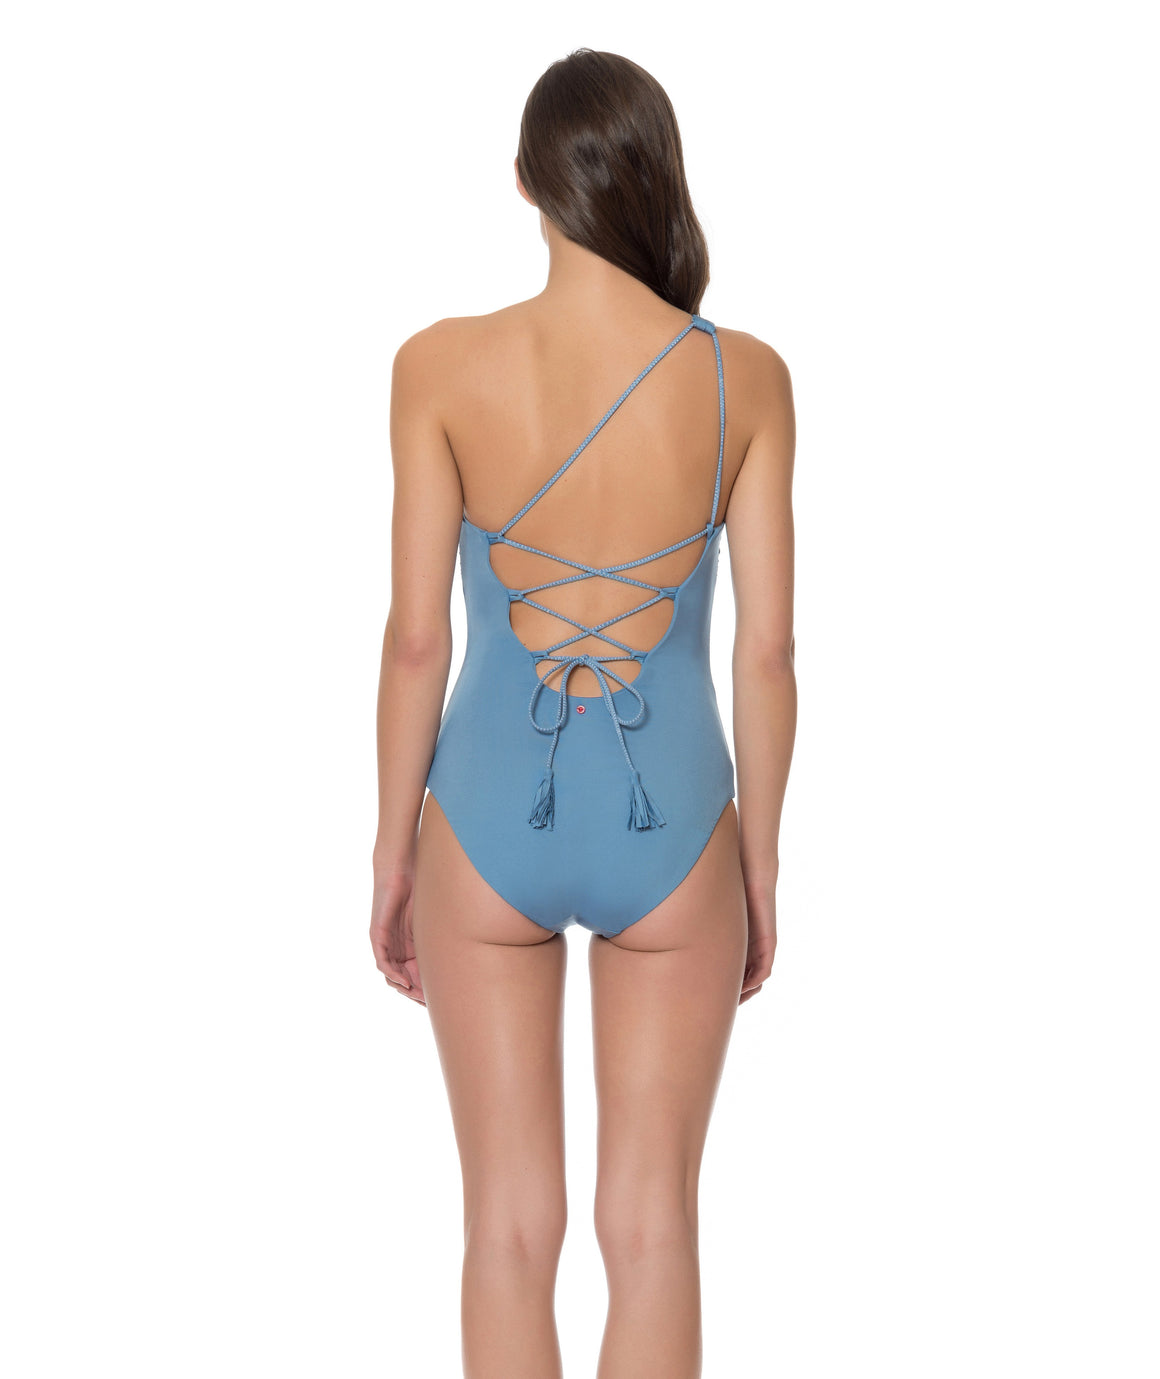 Splice & Dice One Shoulder One Piece Swimsuit